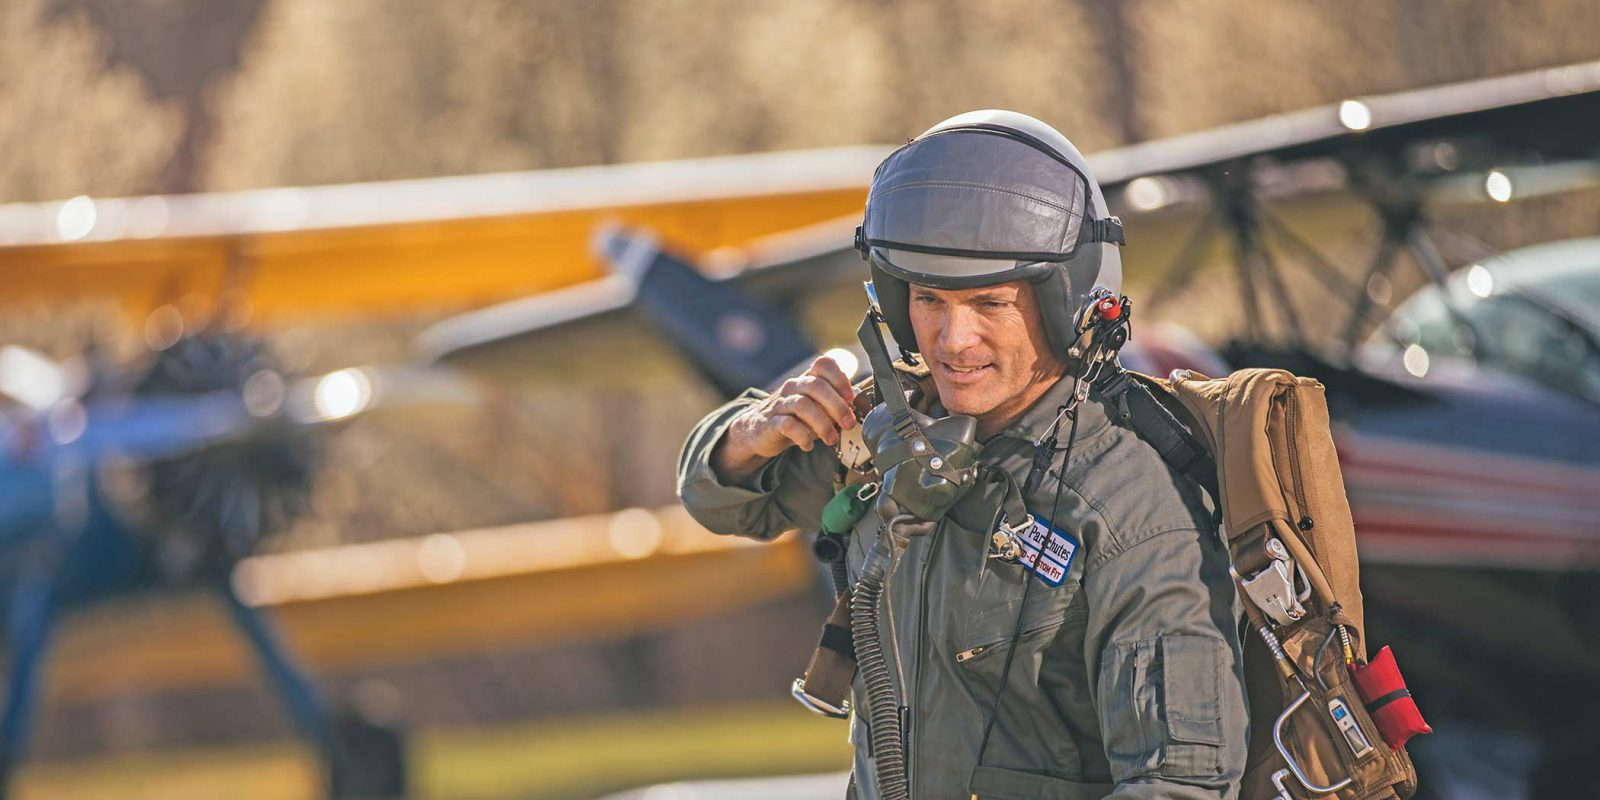 flight test pilot walks to plane wearing helmet and Butler emergency parachute